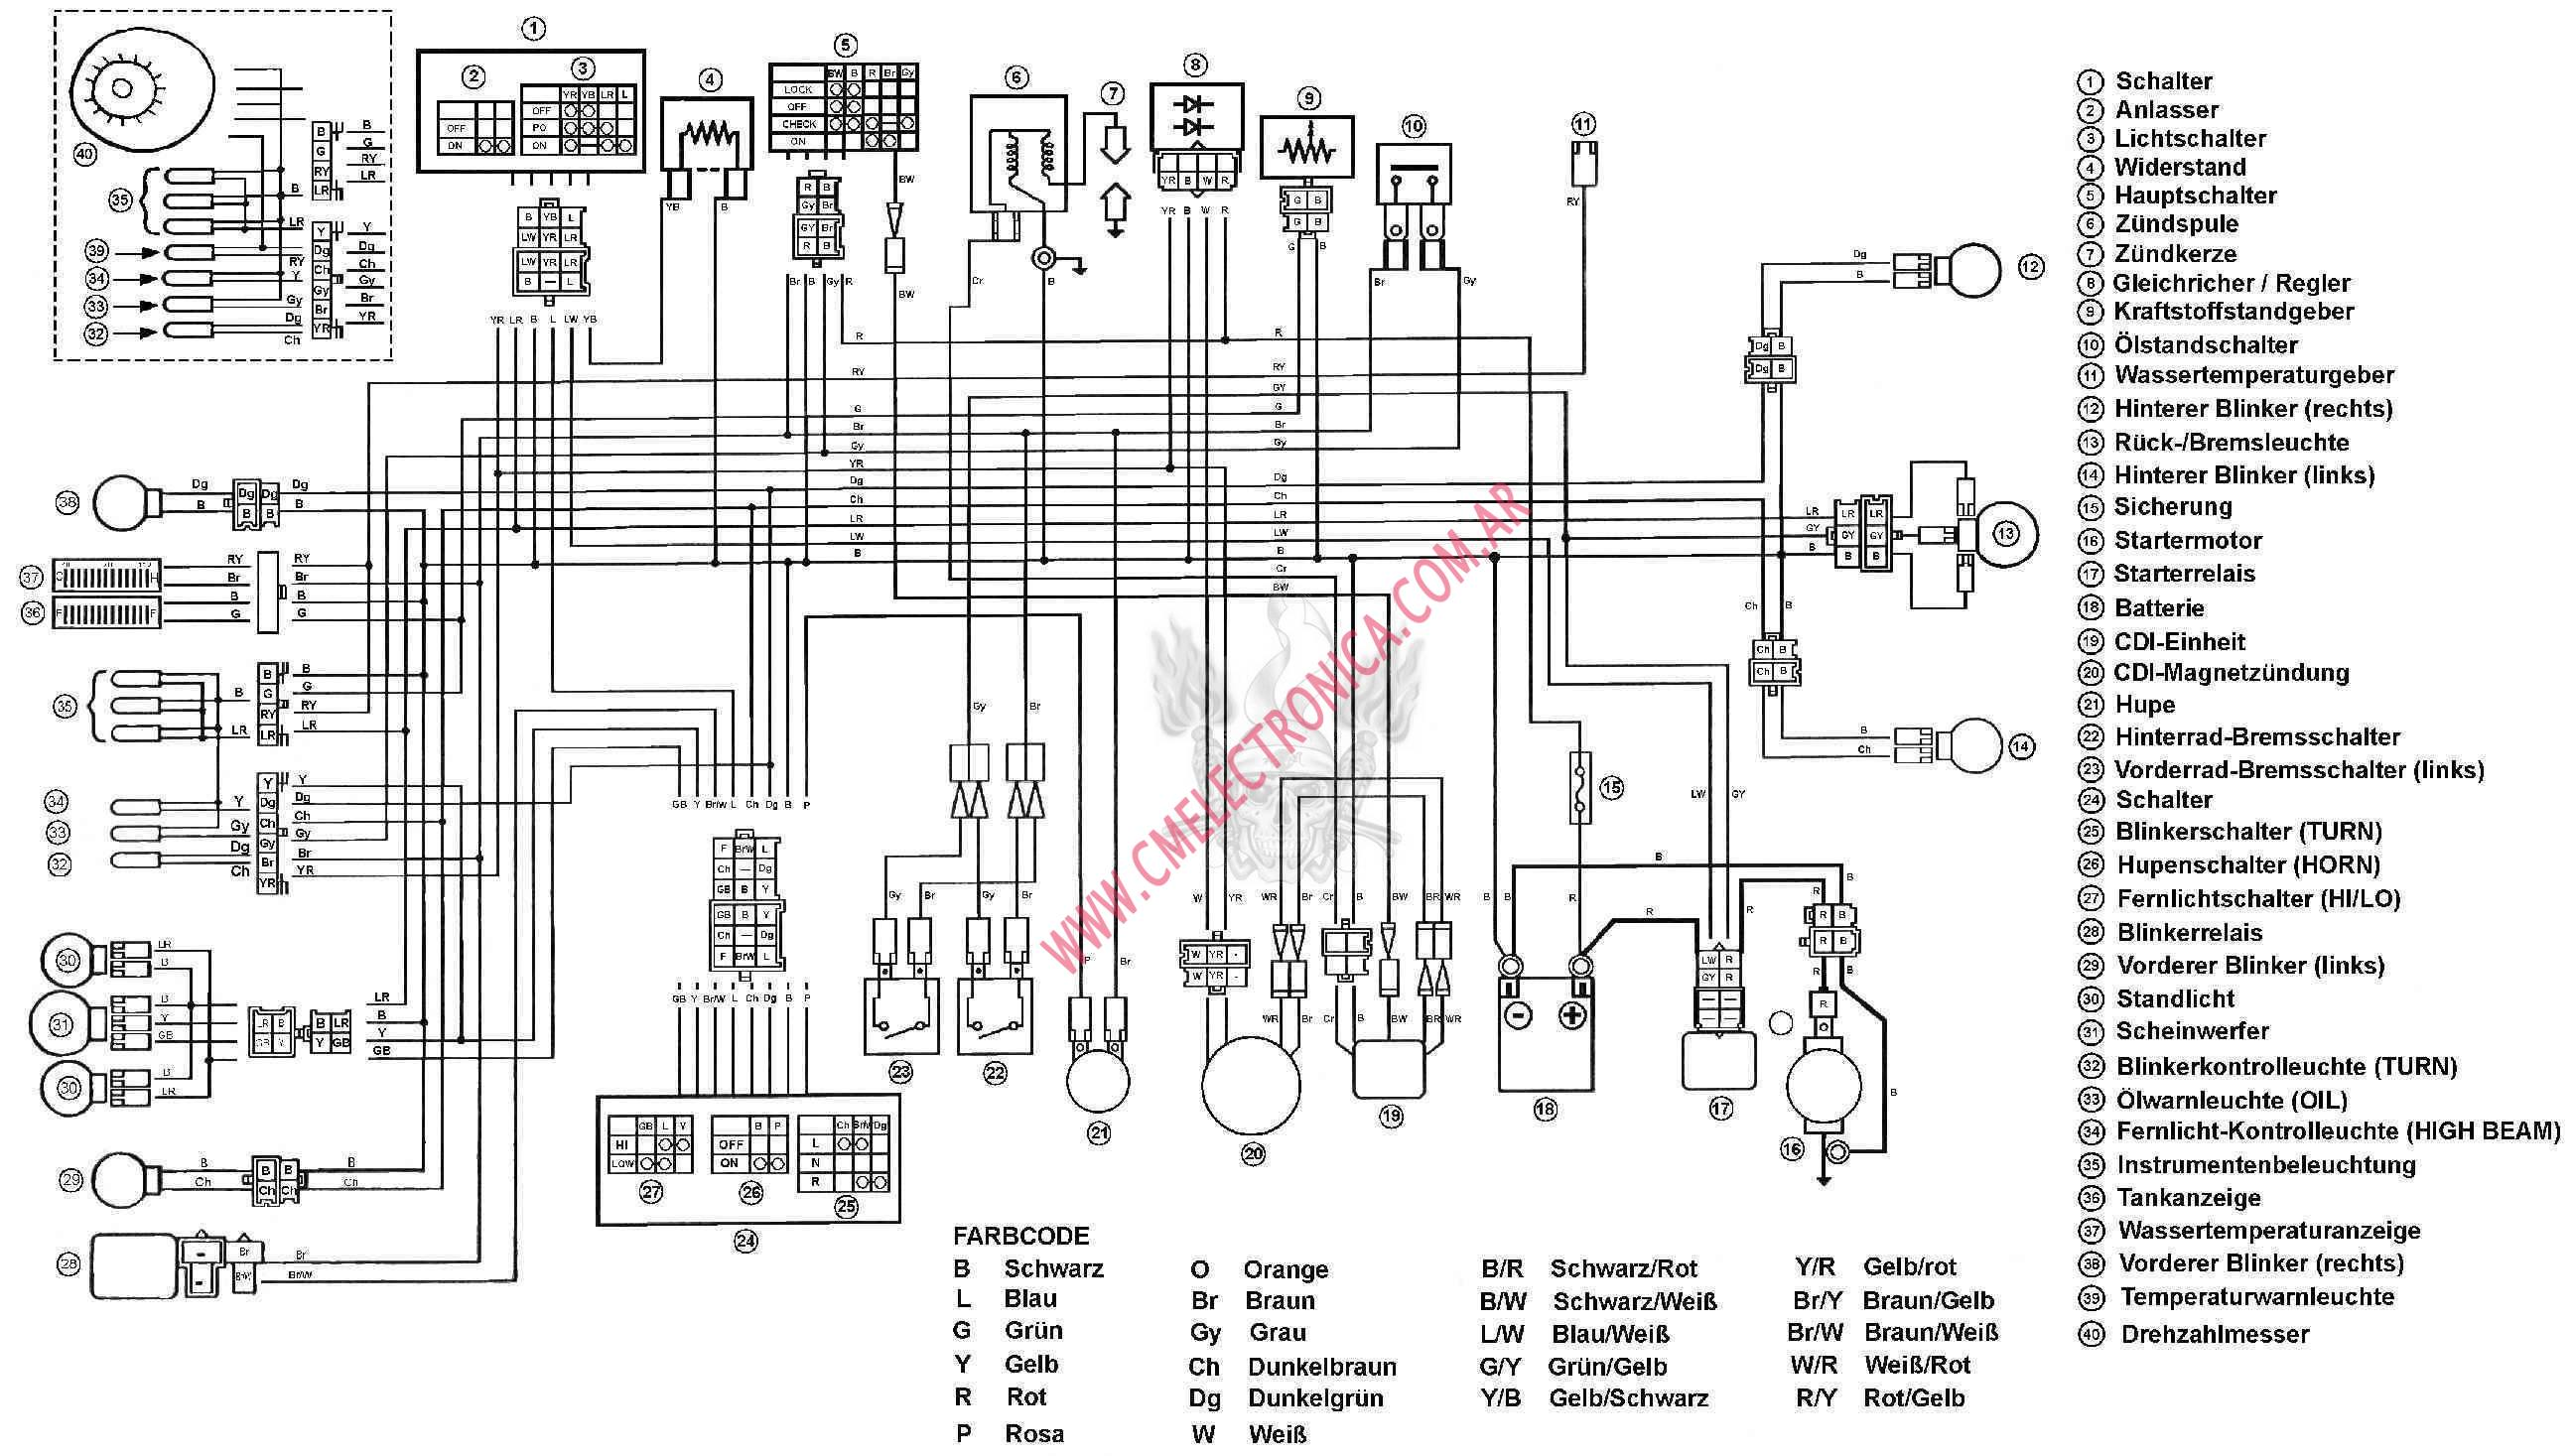 Wiring Diagram Aerox 155